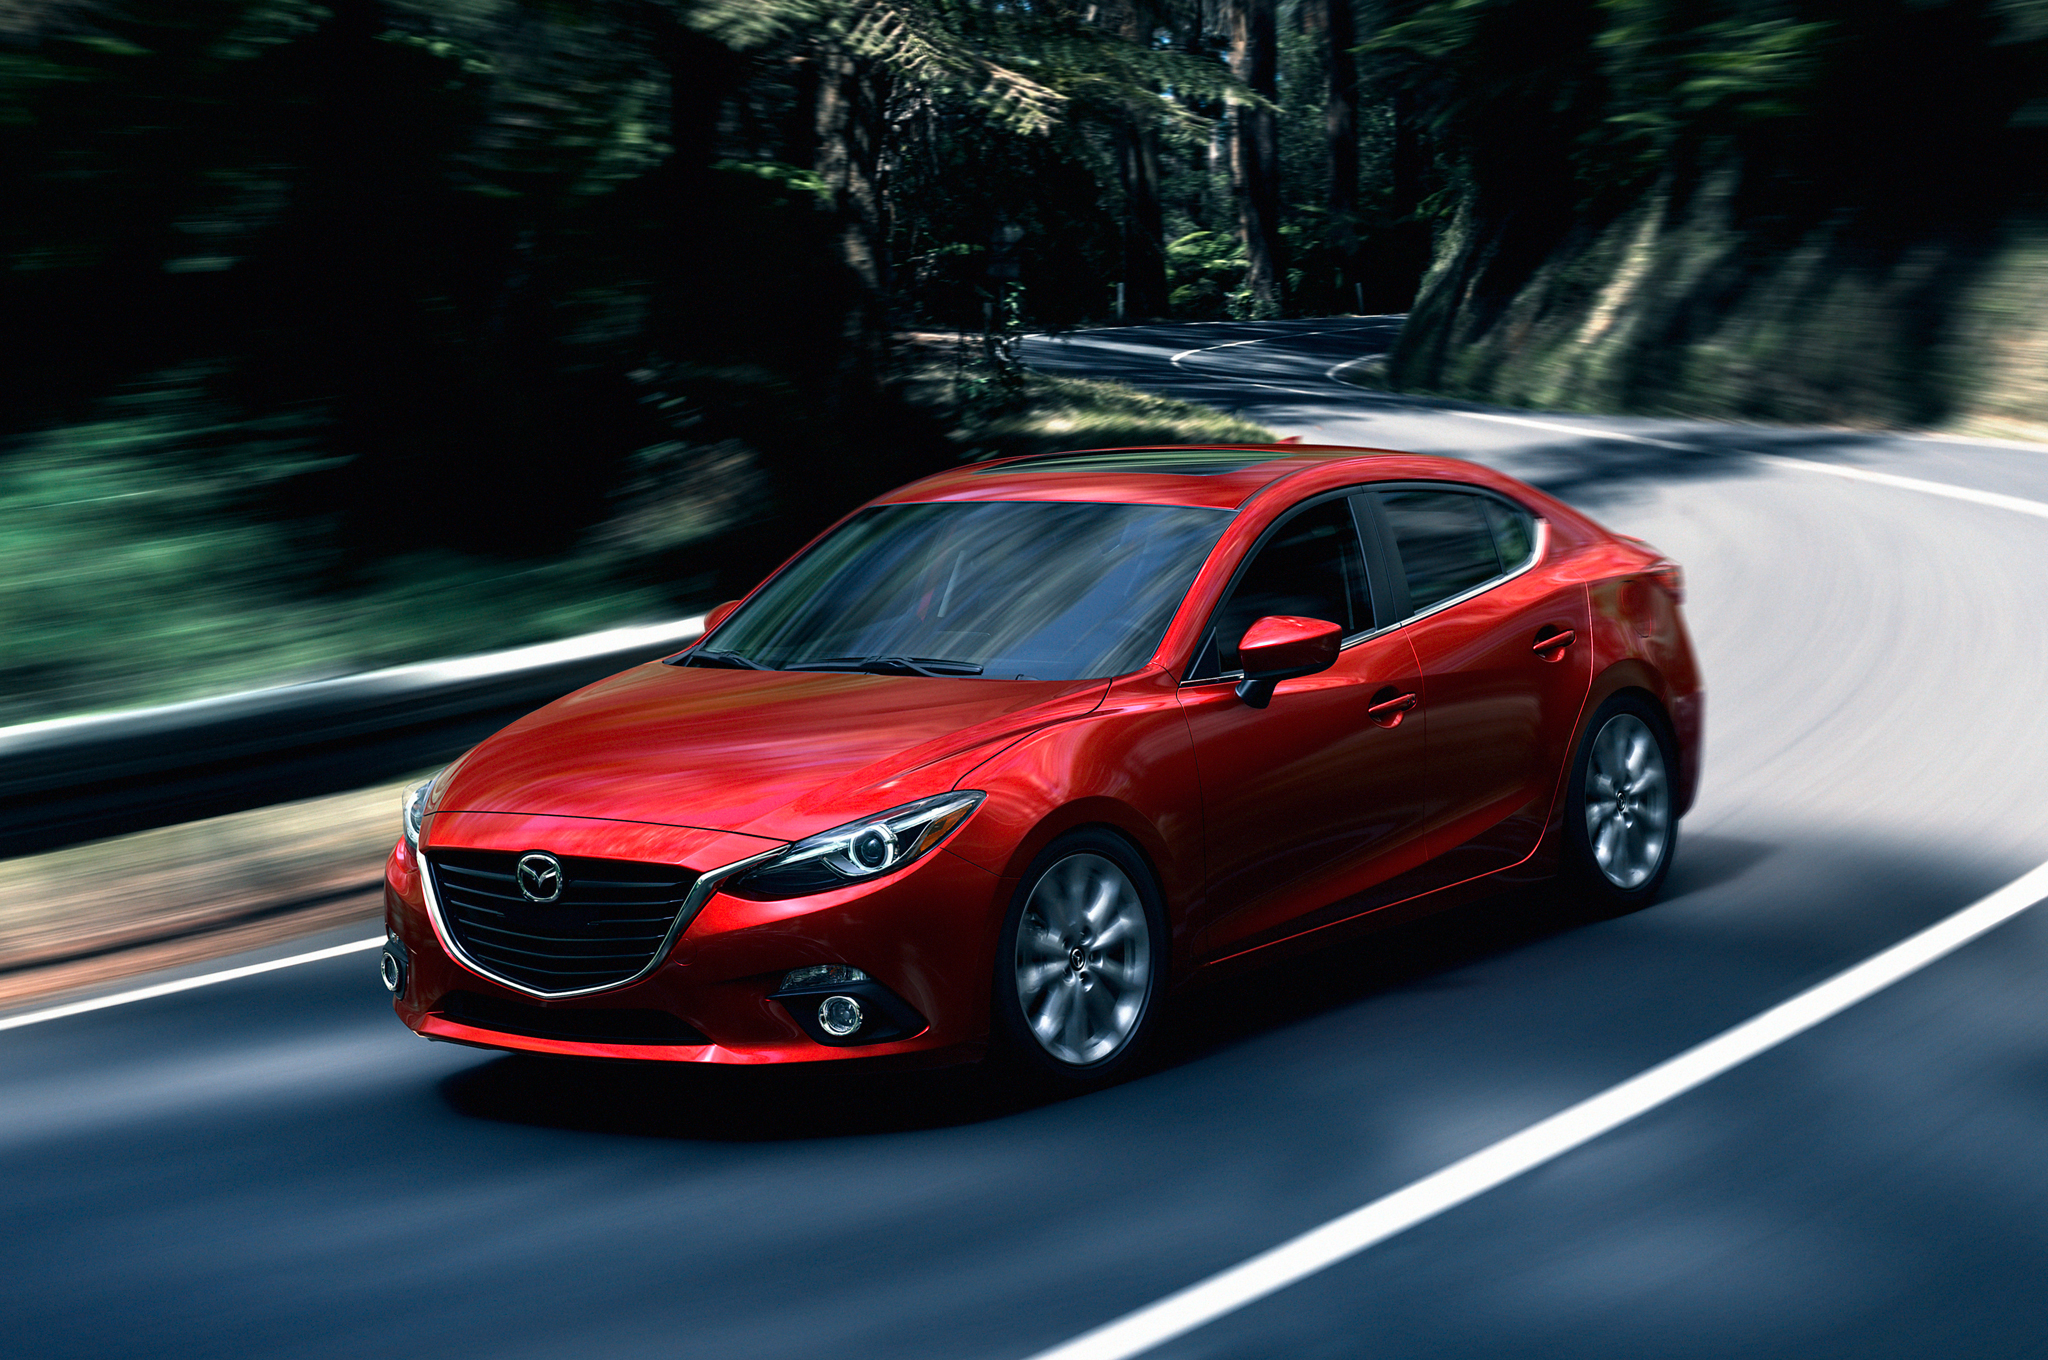 2016 Mazda3 Priced at $18,665 - Motor Trend WOT - Motor Trend on mazda wiring schematics, mazda charging system diagram, mazda b2600i 4x4 starter wiring, mazda steering column diagram, mazda alternator plug, mazda wiring color codes, mazda alternator circuit diagrams, mazda exhaust diagram,